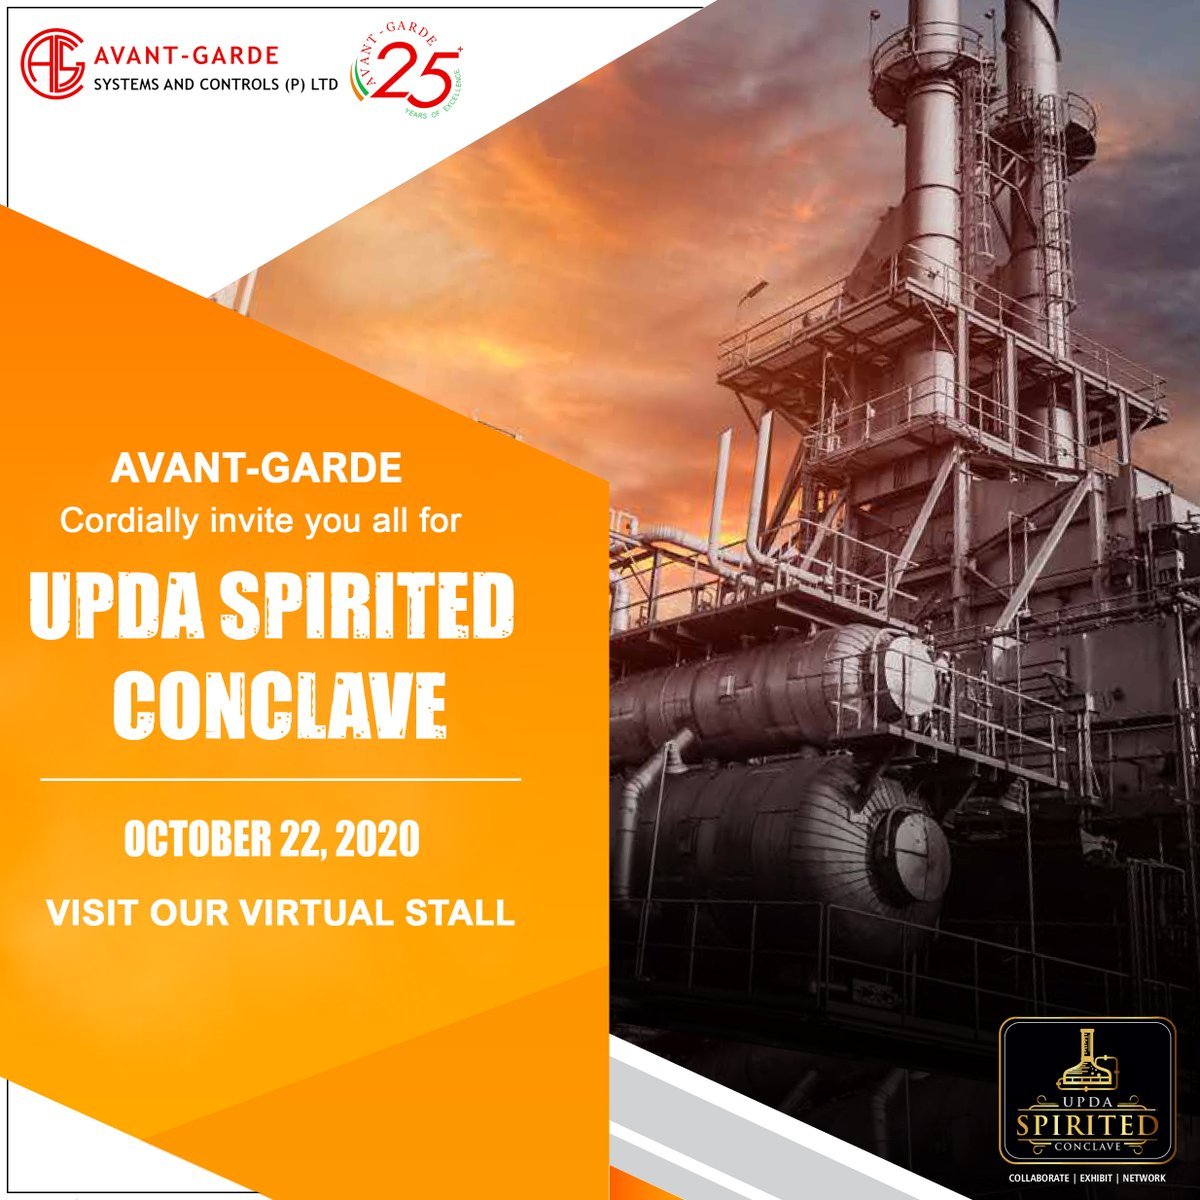 Avant-Garde cordially invite you to our Stall at UPDA's SPIRITED CONCLAVE on 22nd October 2020  For more details visit https://t.co/CEAOKPHpzu  #AvantGarde #AvantGardeIndia #UPDA #Distillery #Ethanol #ZLD #CNG https://t.co/1XWxnjET3s